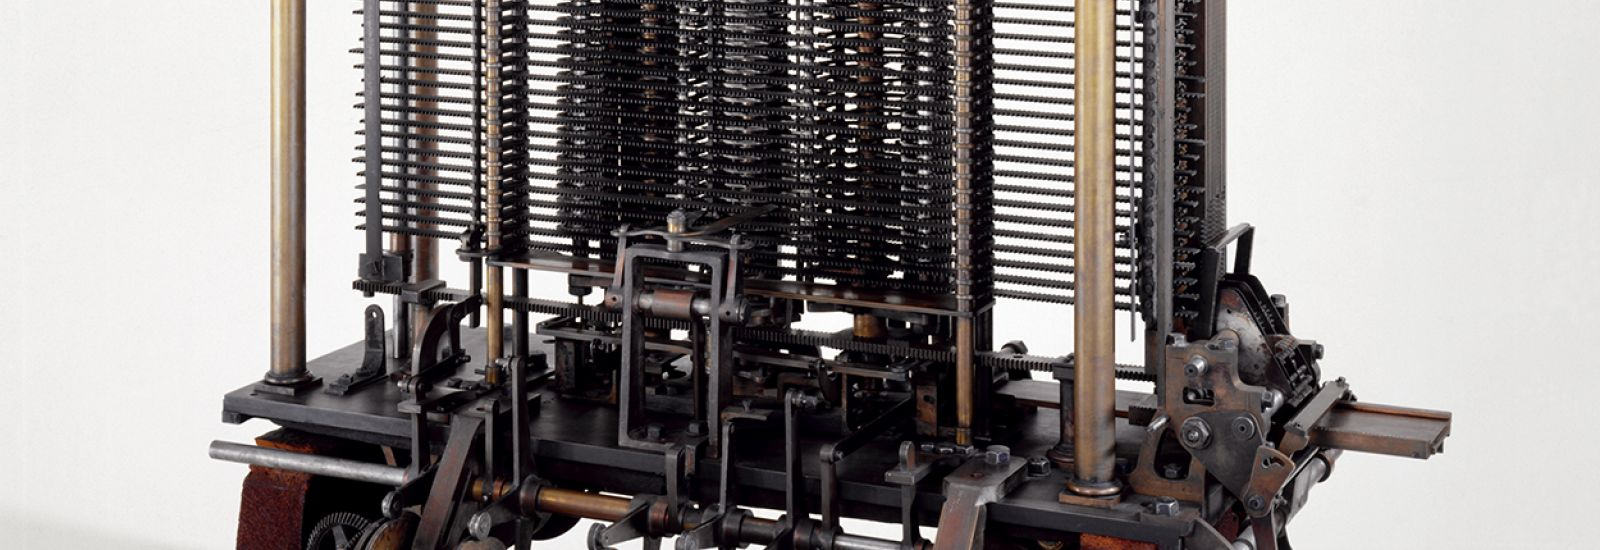 Babbage's Analytical Engine, Science Museum London. Source: Science and Society Picture Library